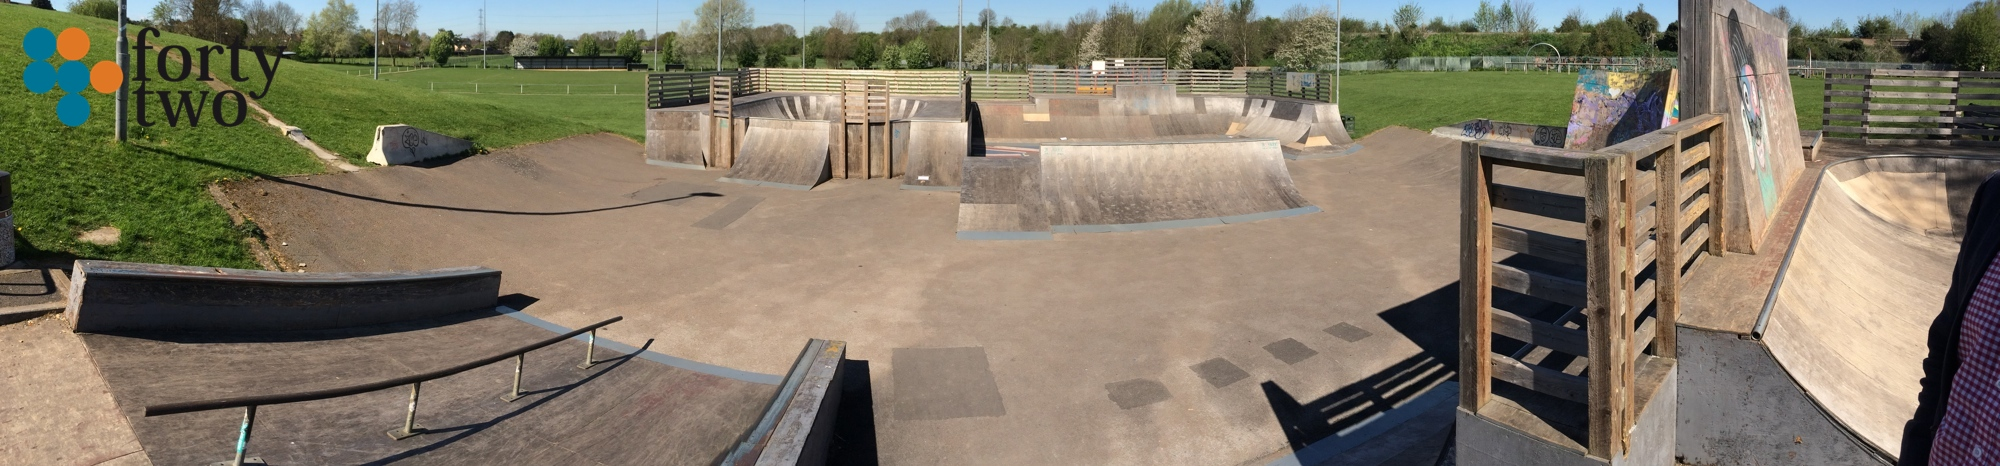 Racliffe skatepark in Nottingham view of Street area